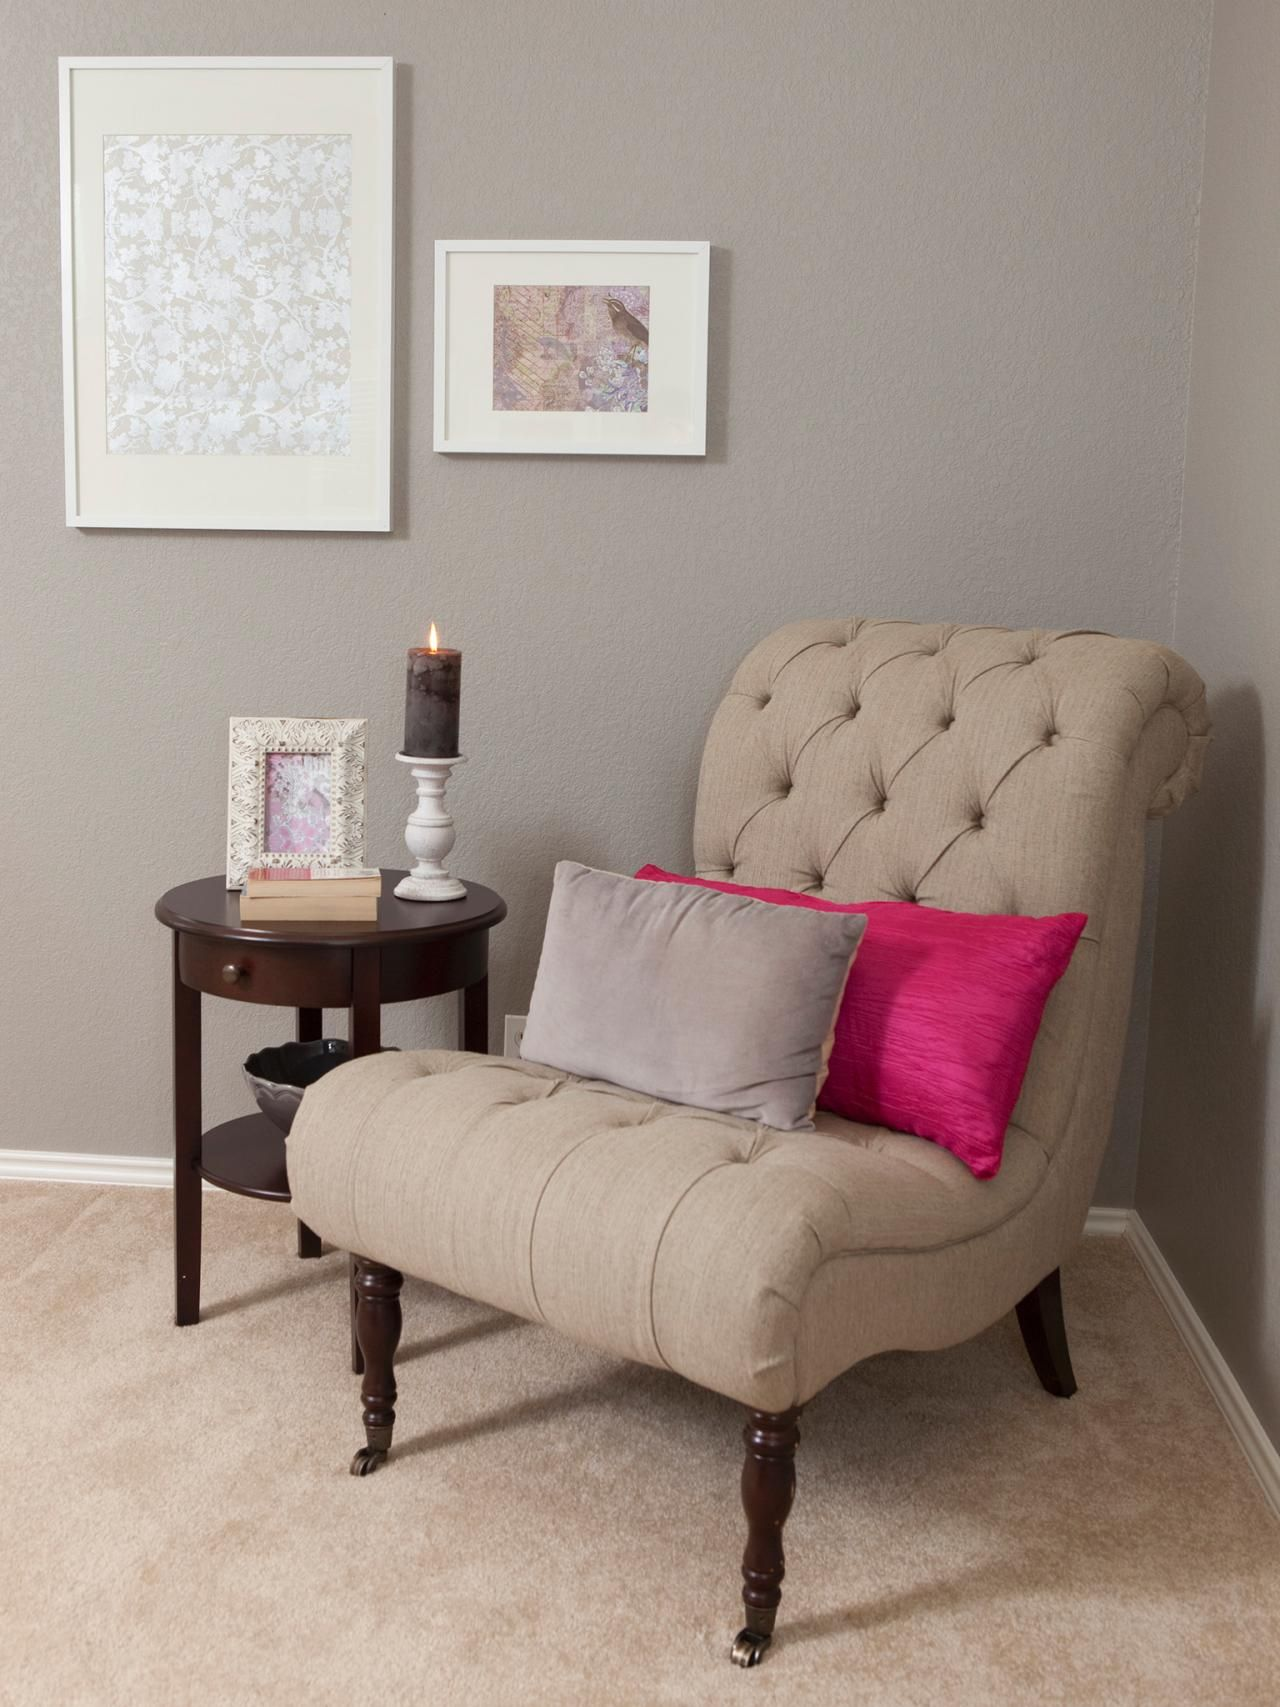 See A Traditional Gray Bedroom Sitting Area With Neutral Tufted Chair Accented By Throw Pillows